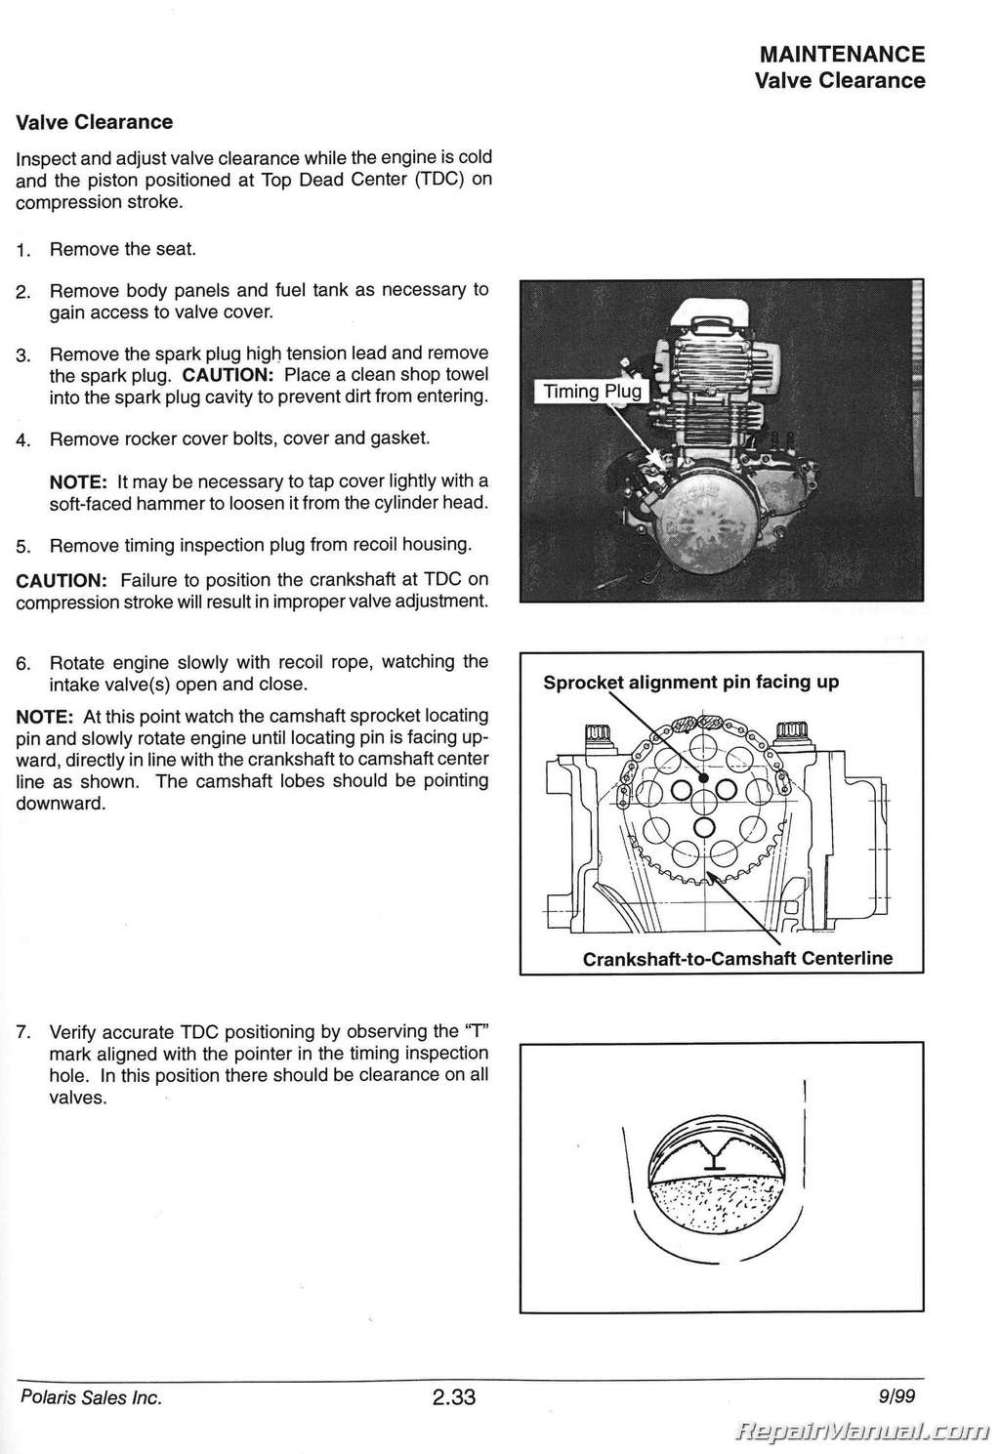 medium resolution of 2002 polaris sportsman 500 wiring diagram share the knownledge